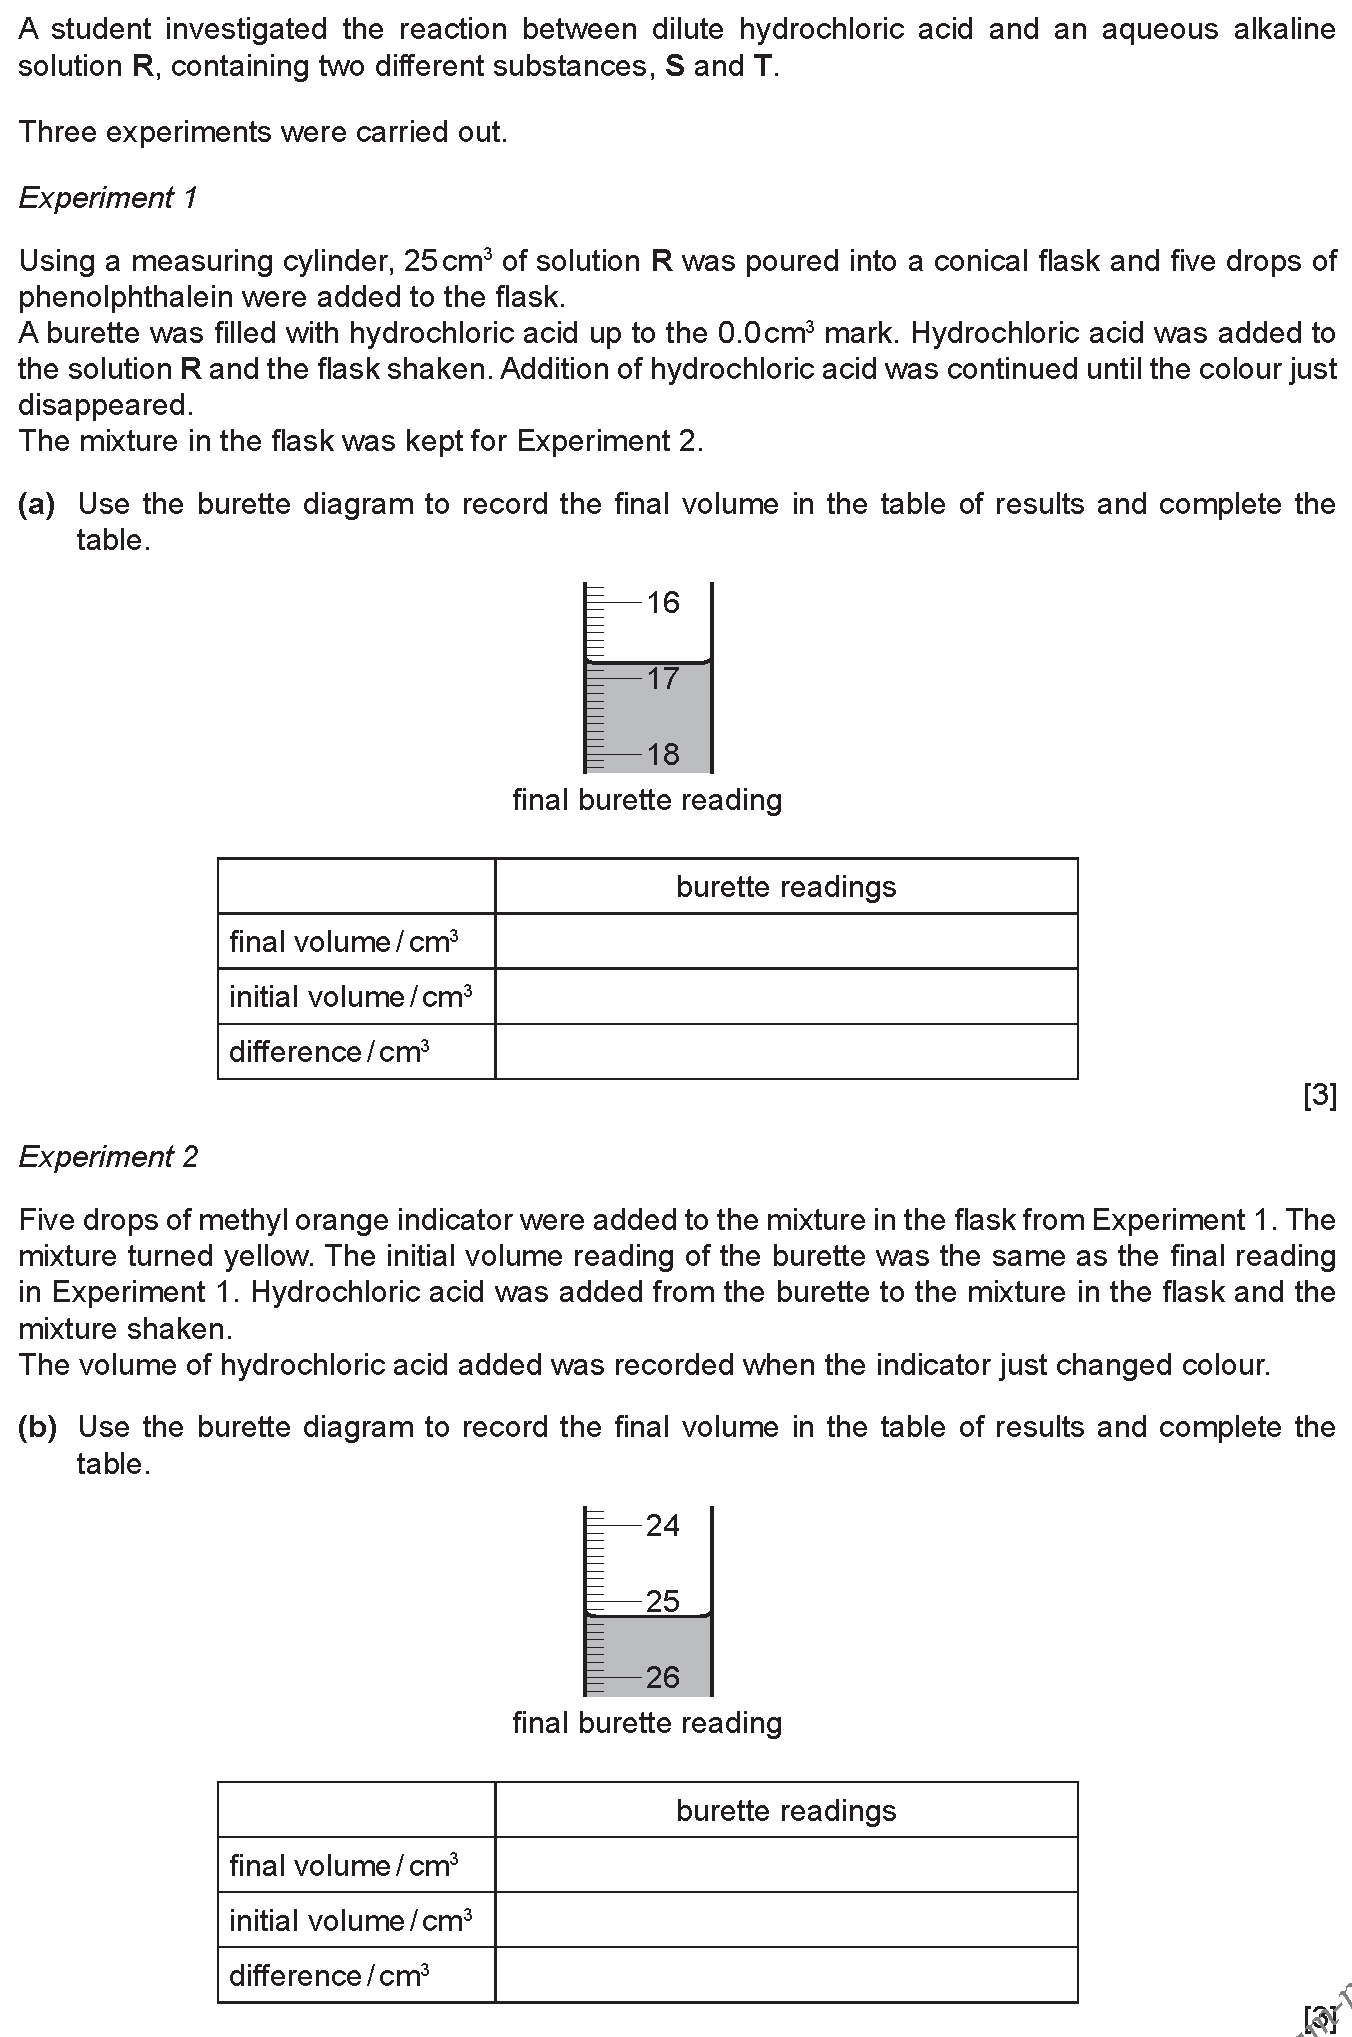 Igcse Cambridge Topical Past Papers Exam Mate